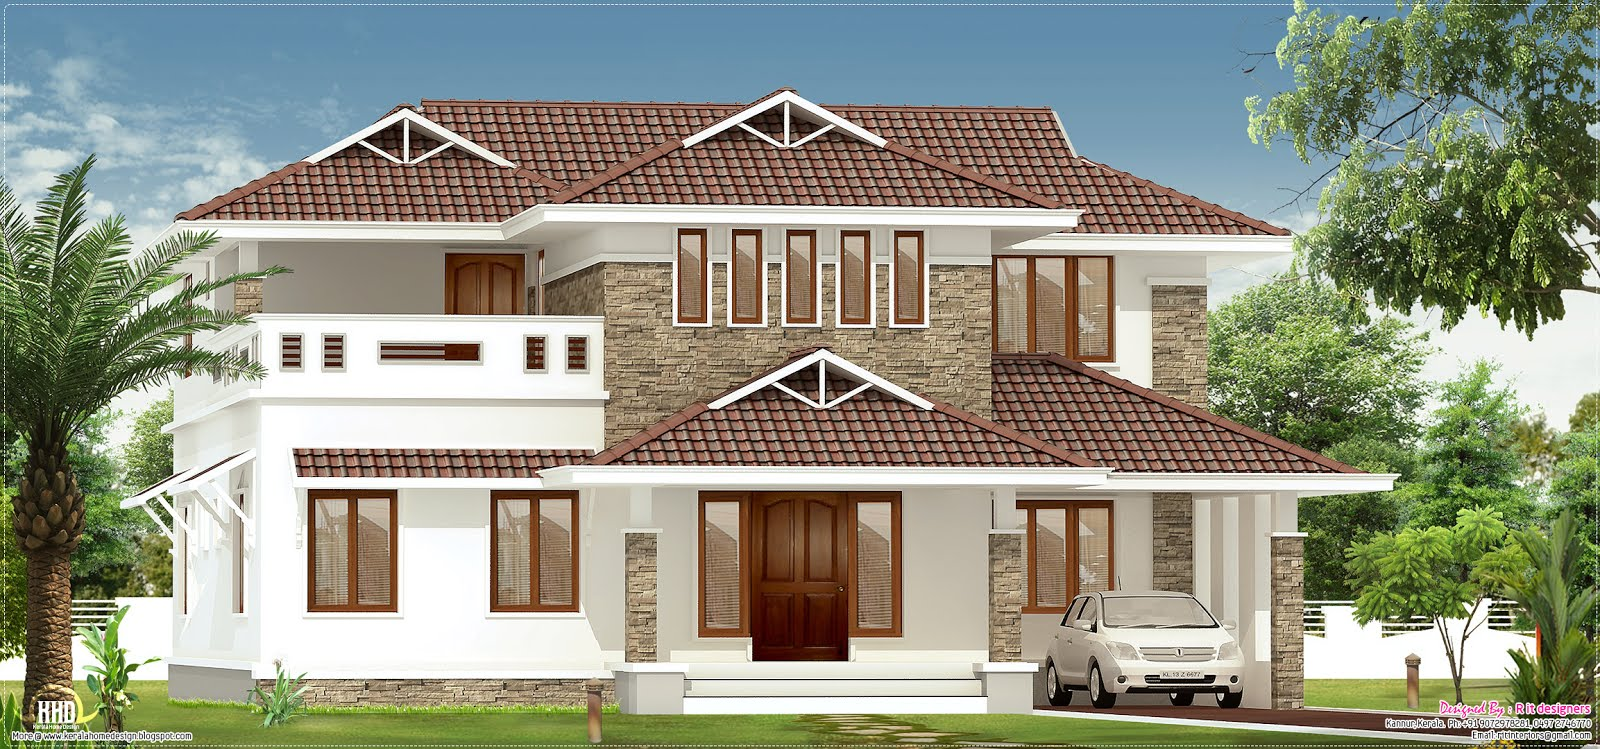 Front Elevation Of Villas In Kerala : Home villas front elevation n design images omahdesigns